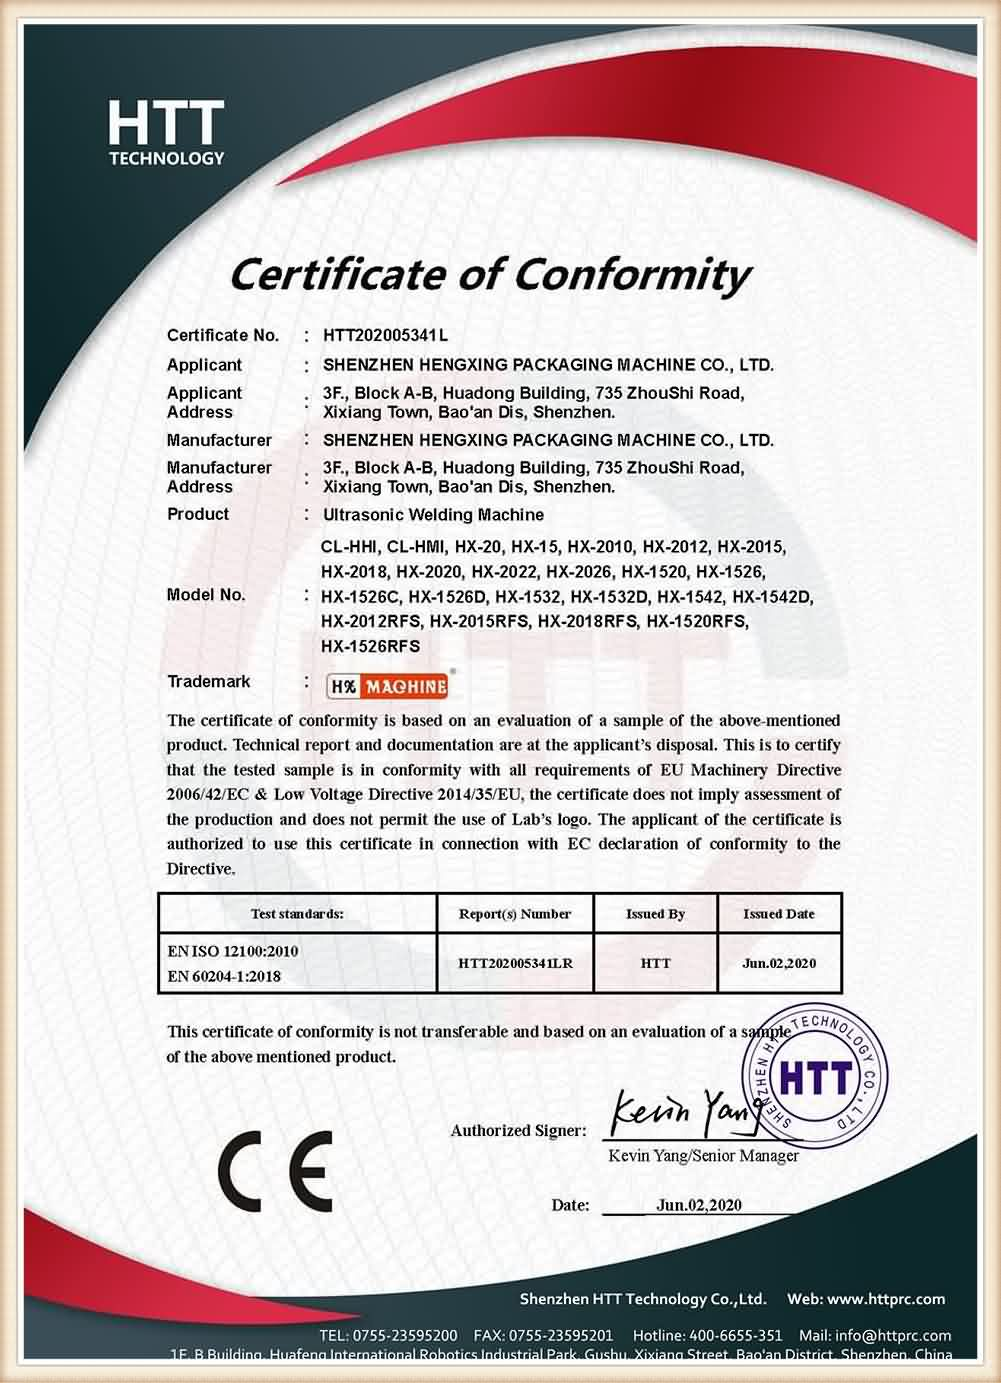 Certificate of Conformity-Ultrasonic Welding Machine